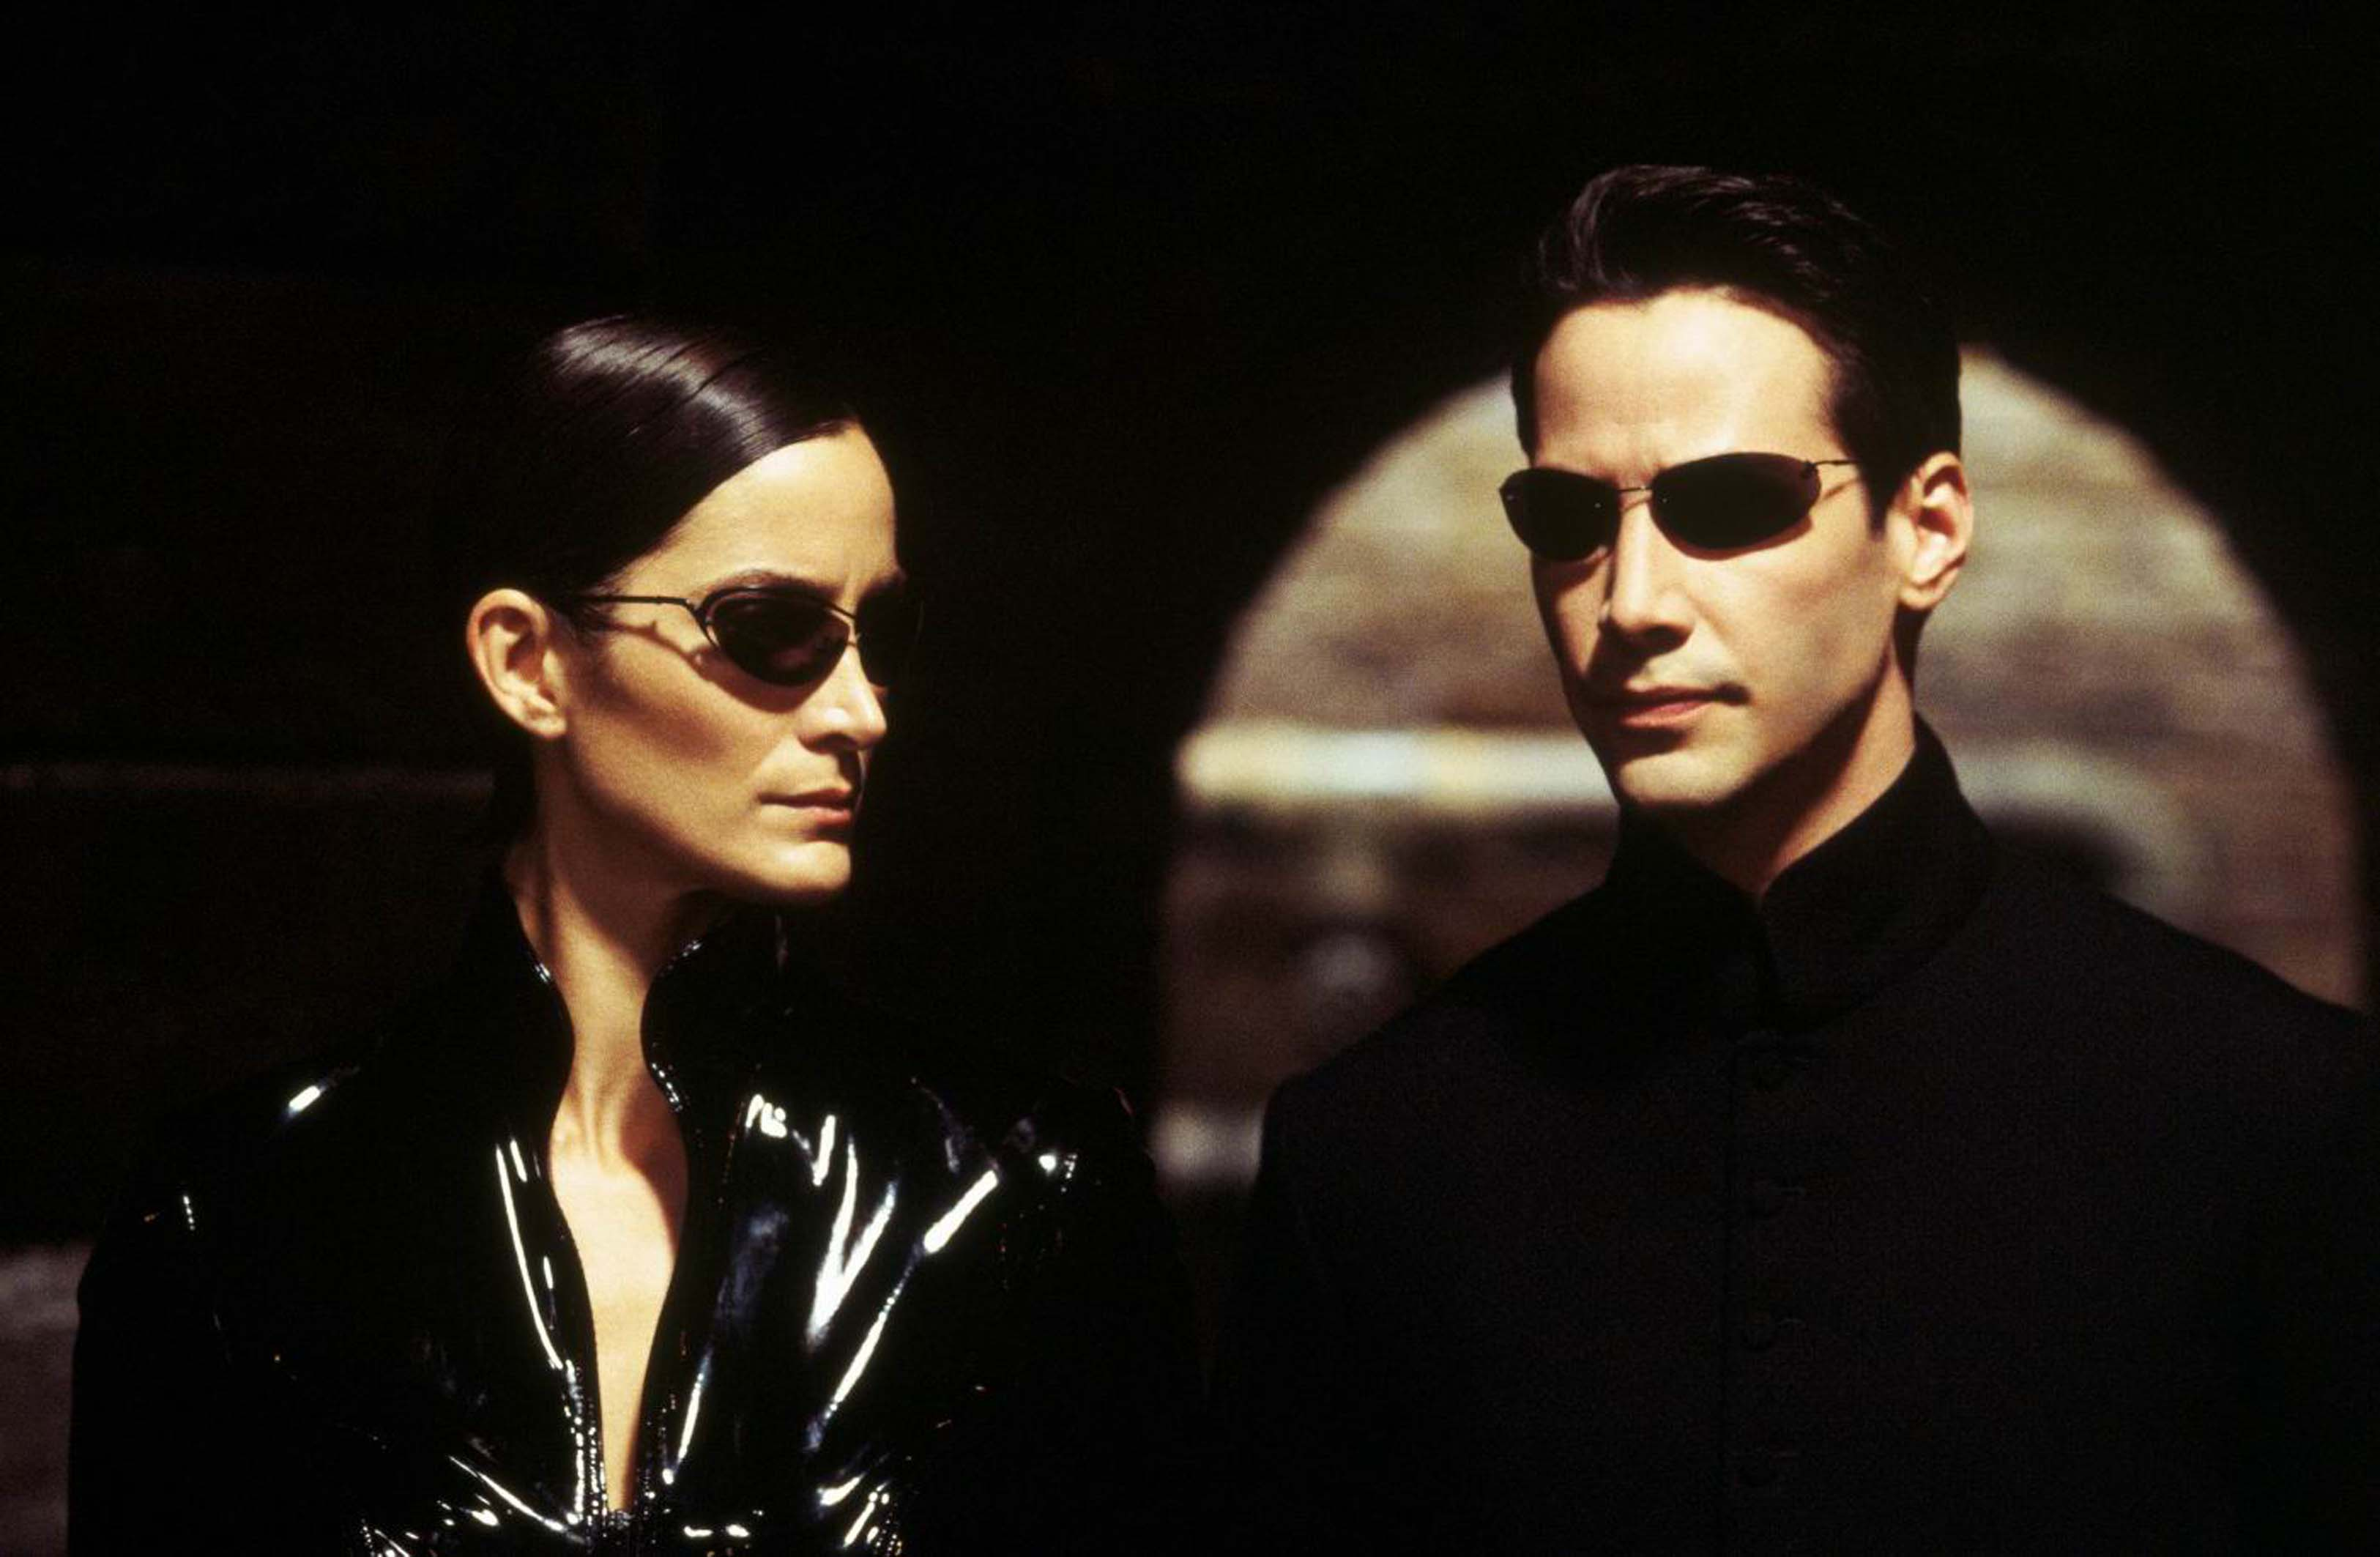 'The Matrix 4' Kicks Off Filming With Keanu Reeves, but This Is Not the Neo You Remember